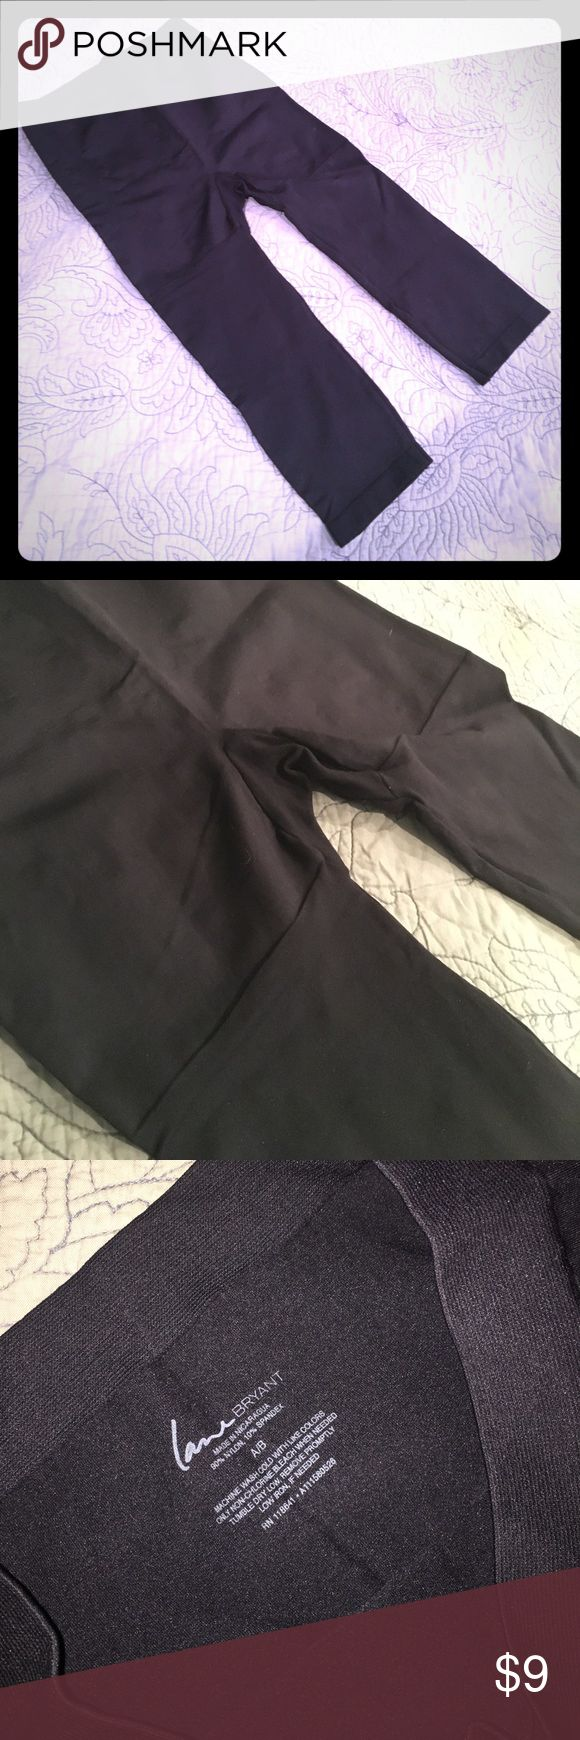 """Black cropped 16"""" inseam tights/ leggings Black cropped 16"""" inseam leggings—never worn, great under dresses/ skirts, or as an invisible extra layer in chilly weather. LB A/B size = 14/16W. The fabric is a sort of cross between thick tights and leggings. Lane Bryant Pants Leggings"""